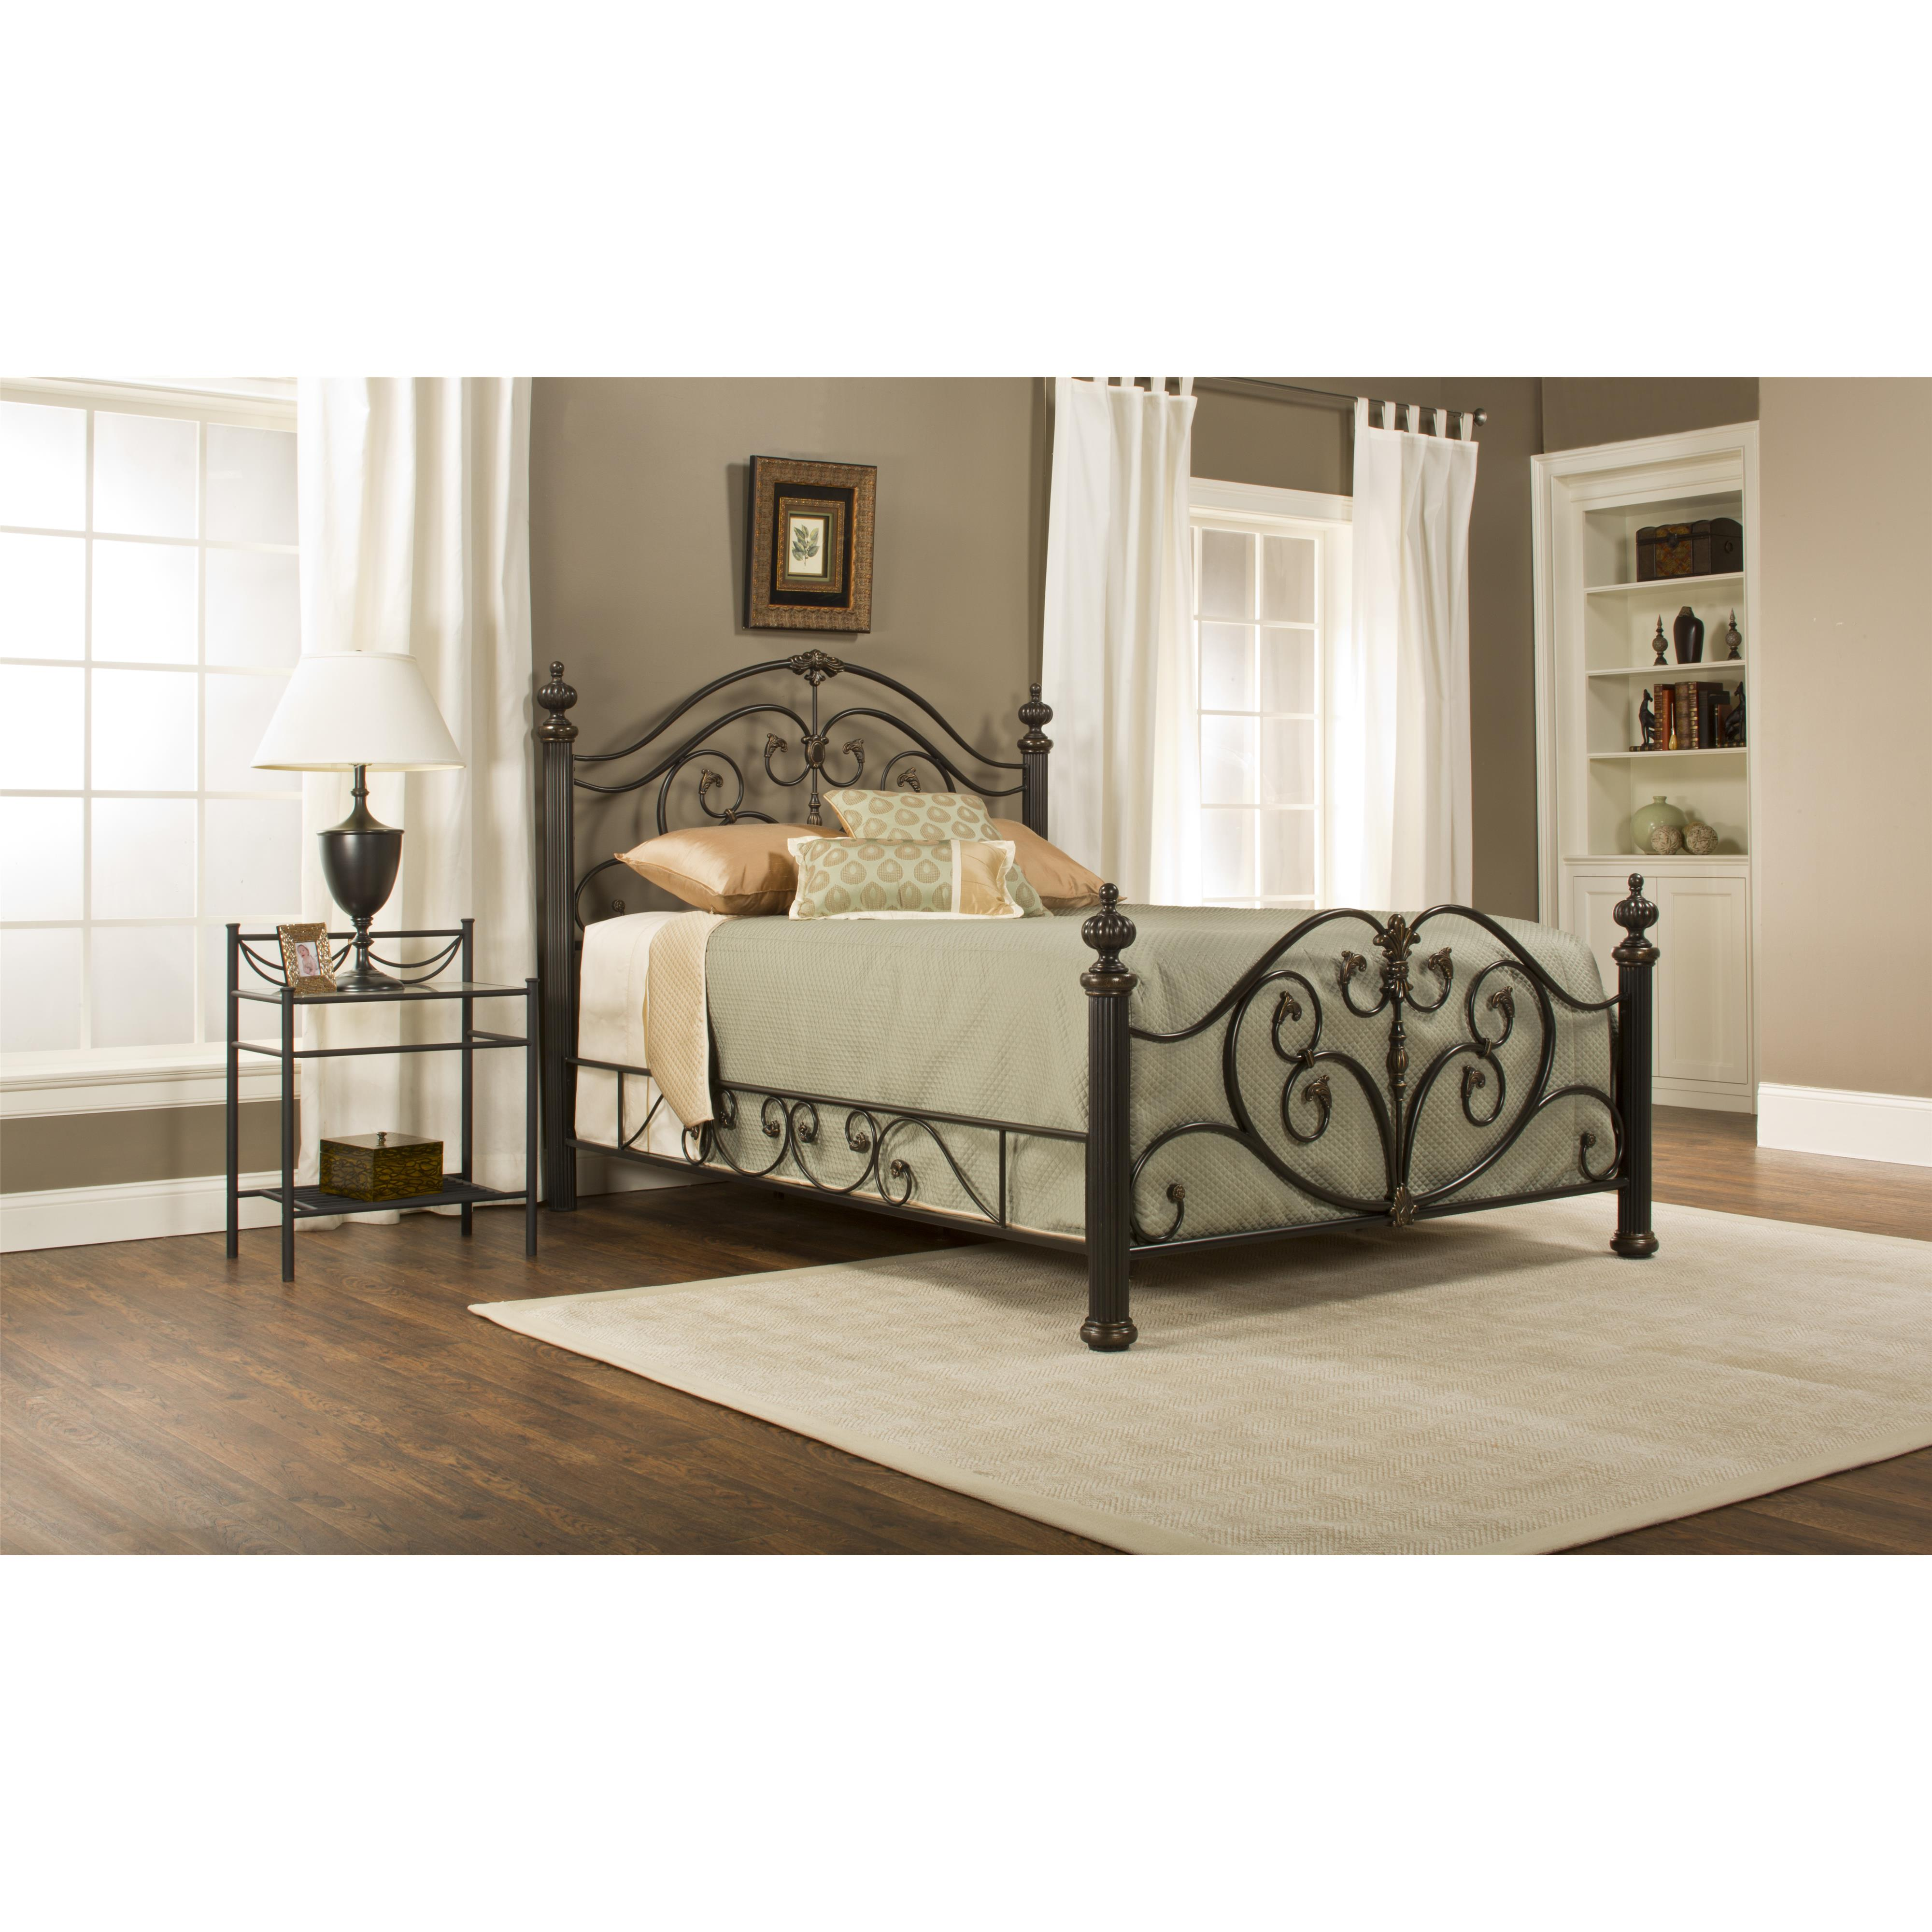 Hillsdale Metal Beds Grand Isle King Bed Set - Item Number: 1012BKR